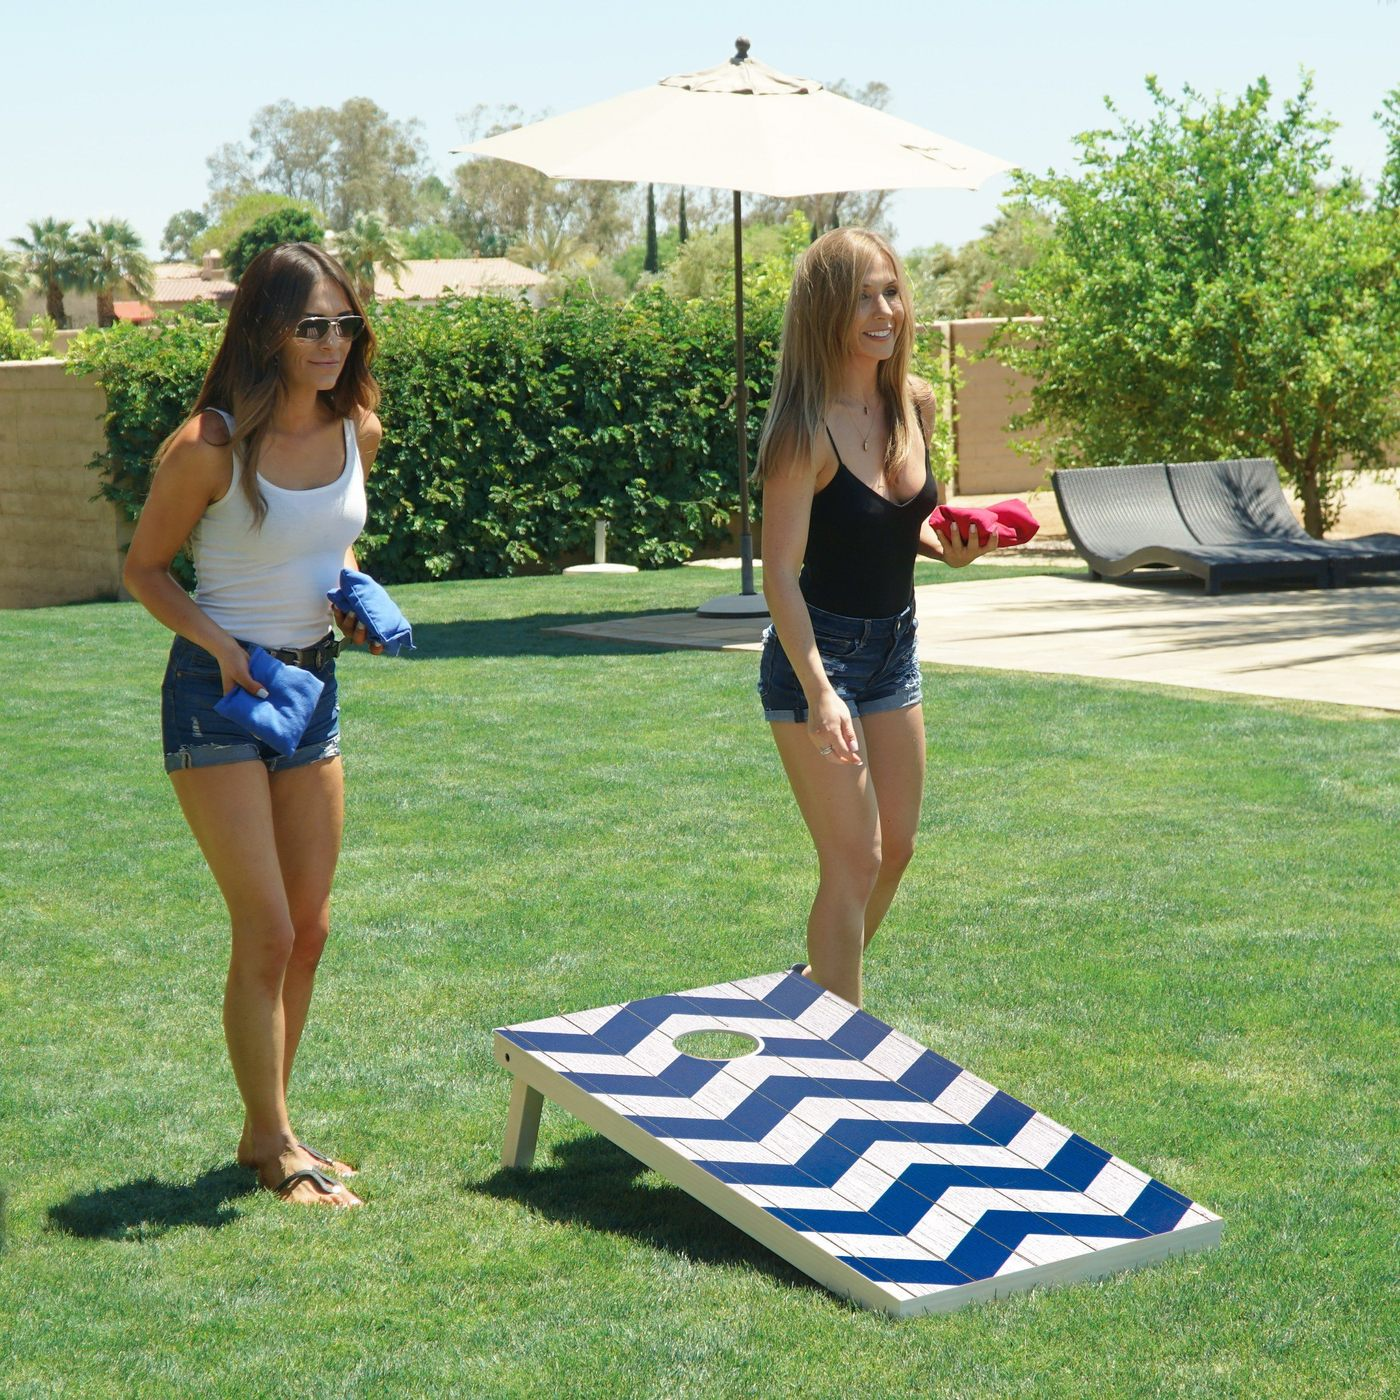 Cornhole is the most popular outdoor game for groups